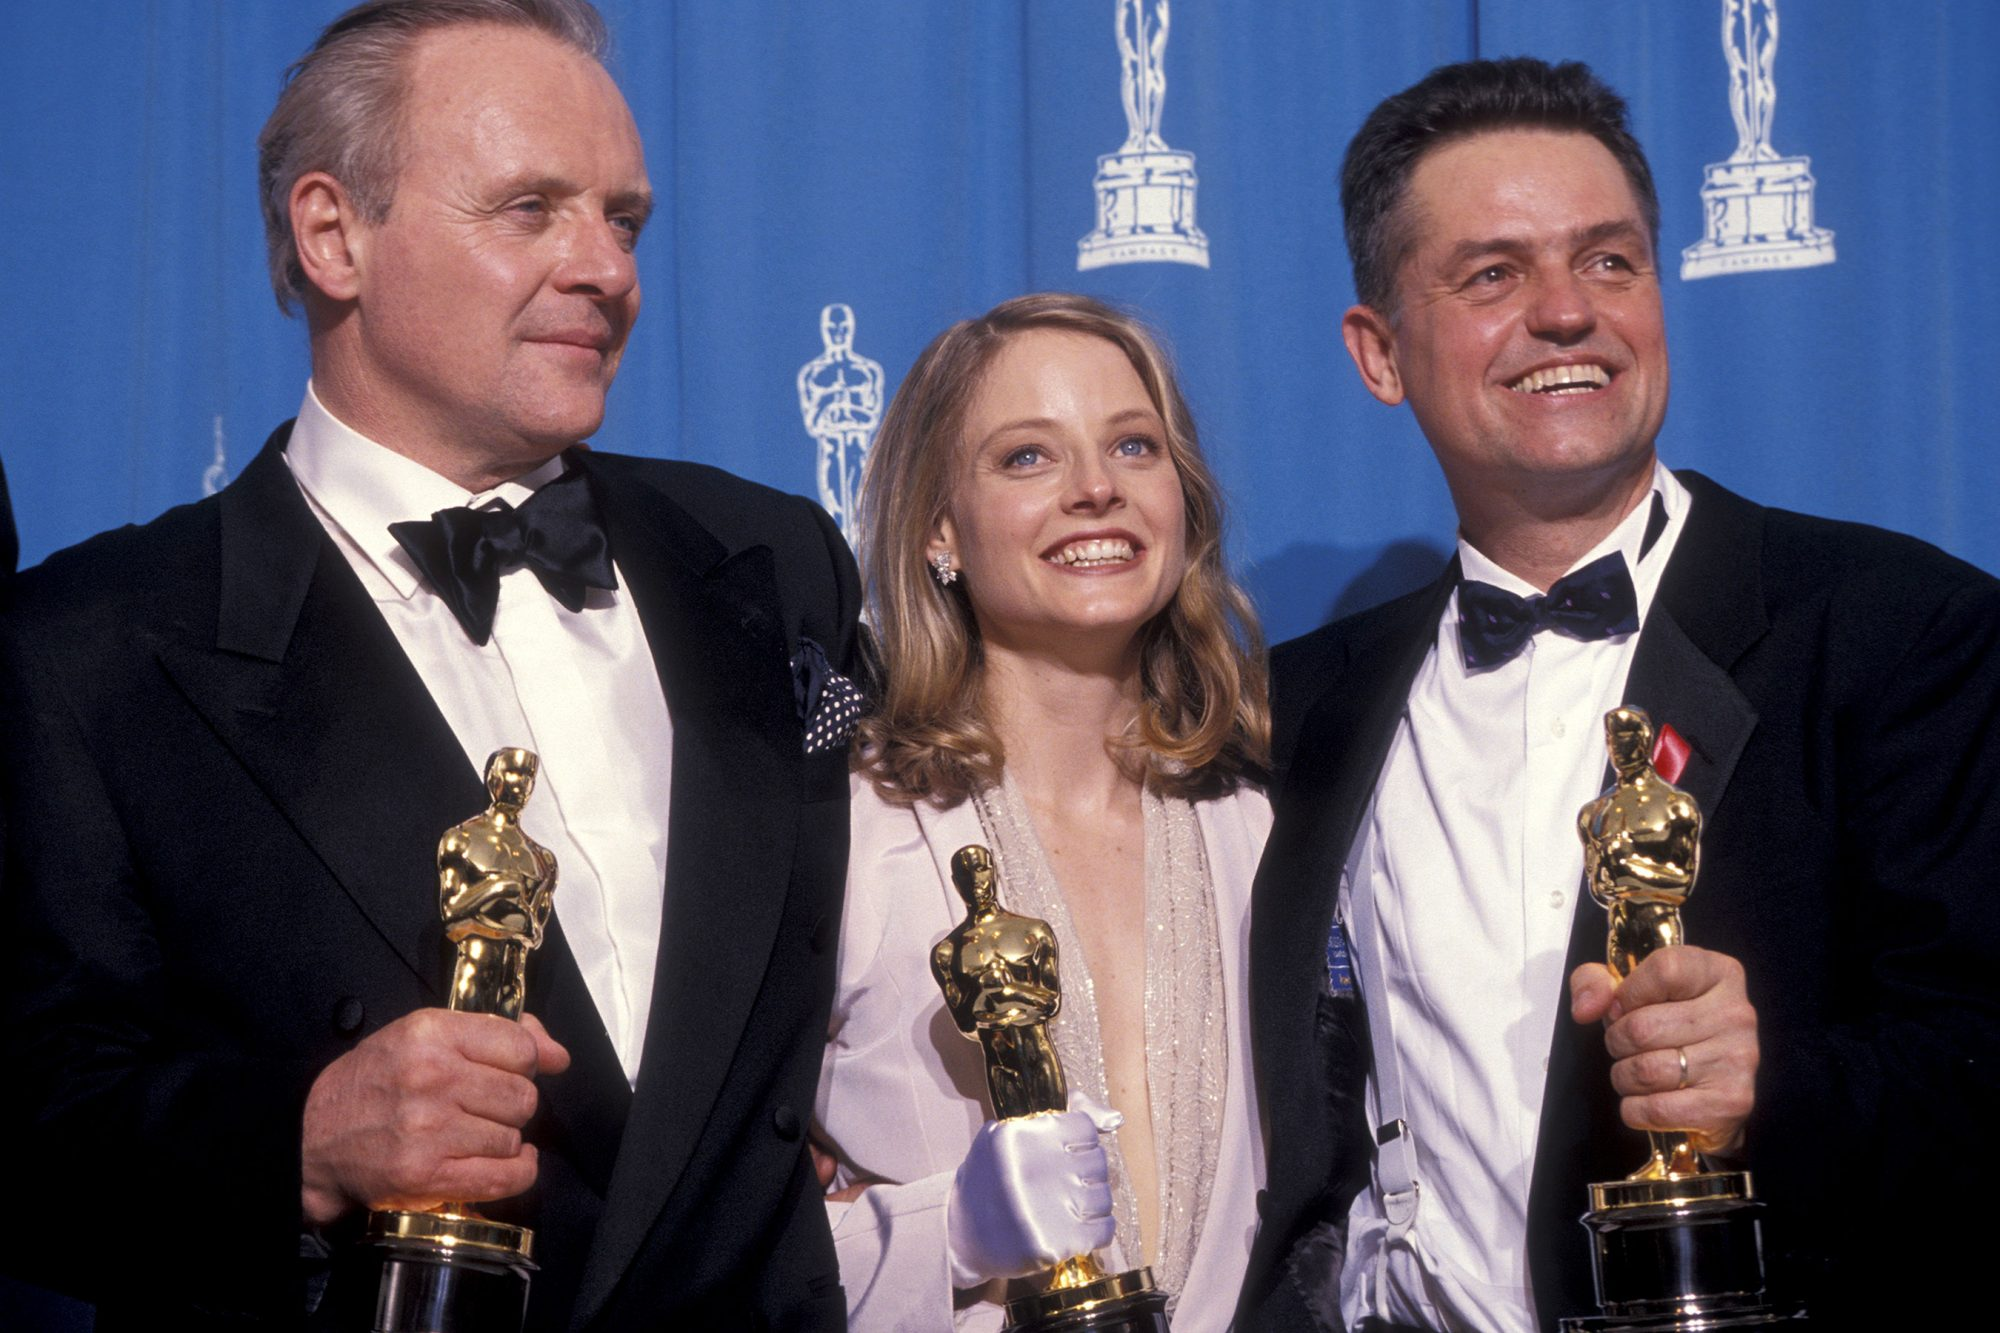 64th Annual Academy Awards